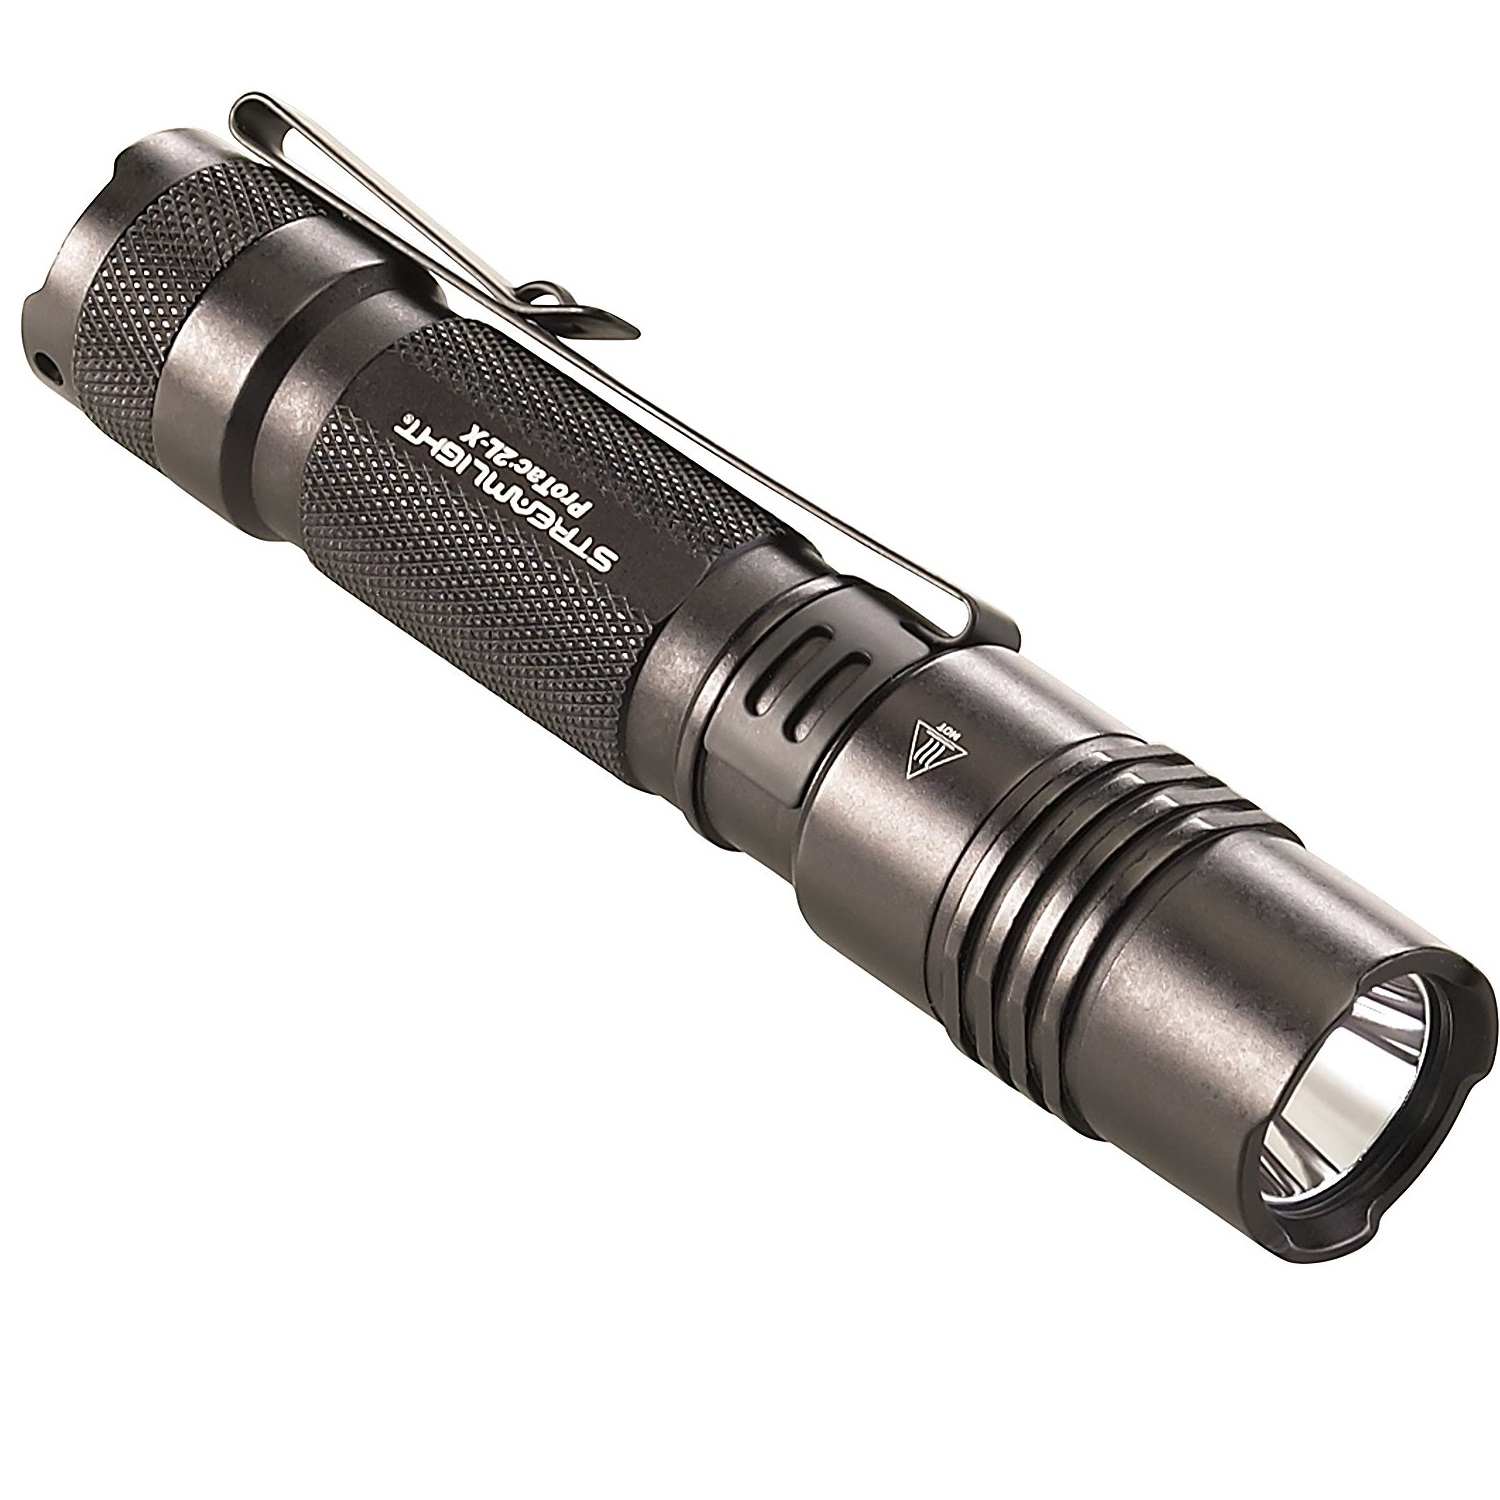 Streamlight ProTac 2L X 500 Lumens Flashlight - Black